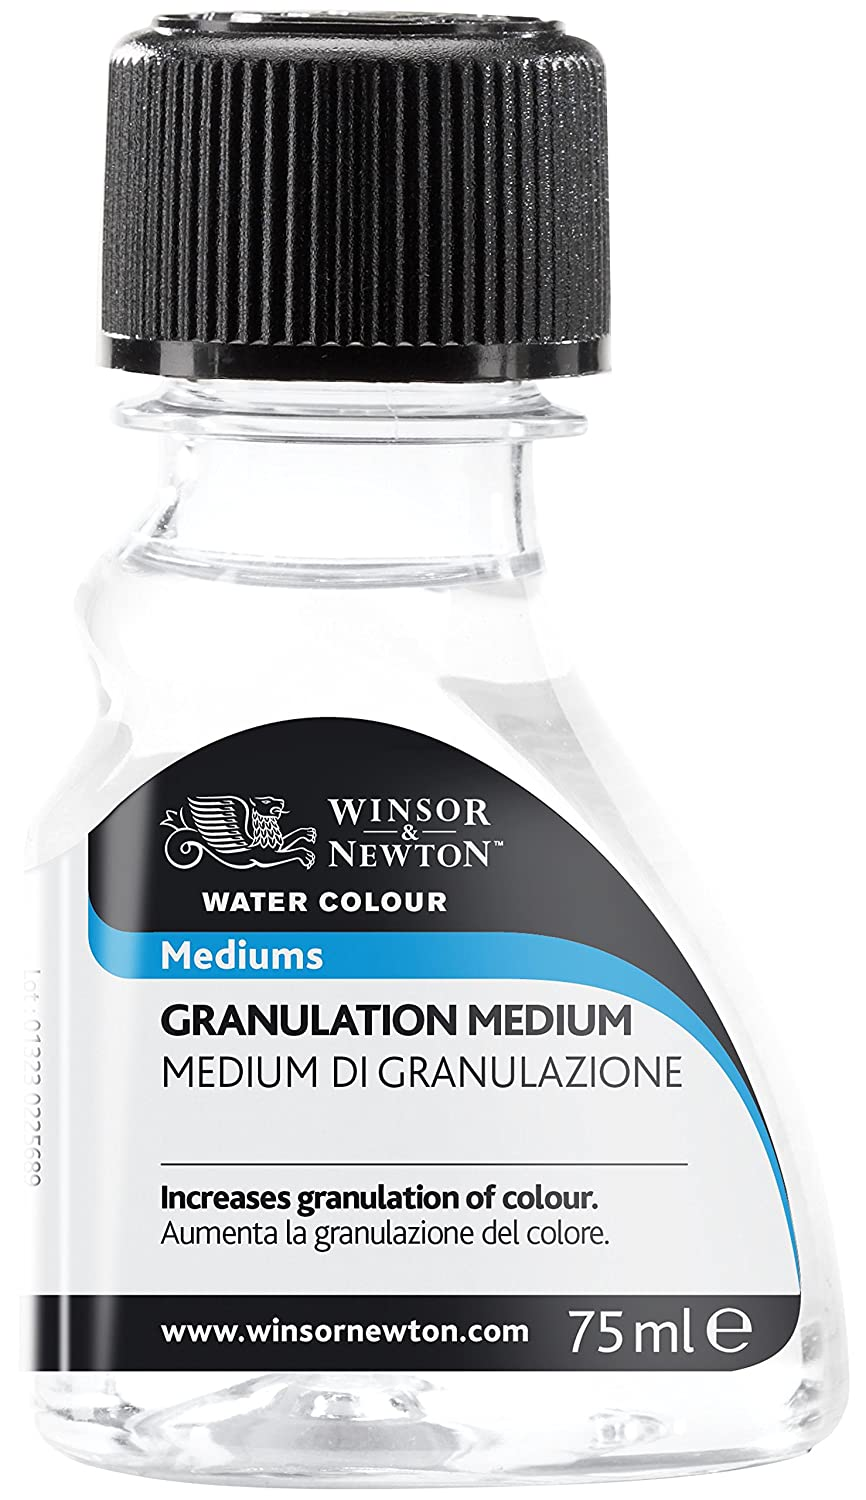 Winsor & Newton 75ml Granulation Medium